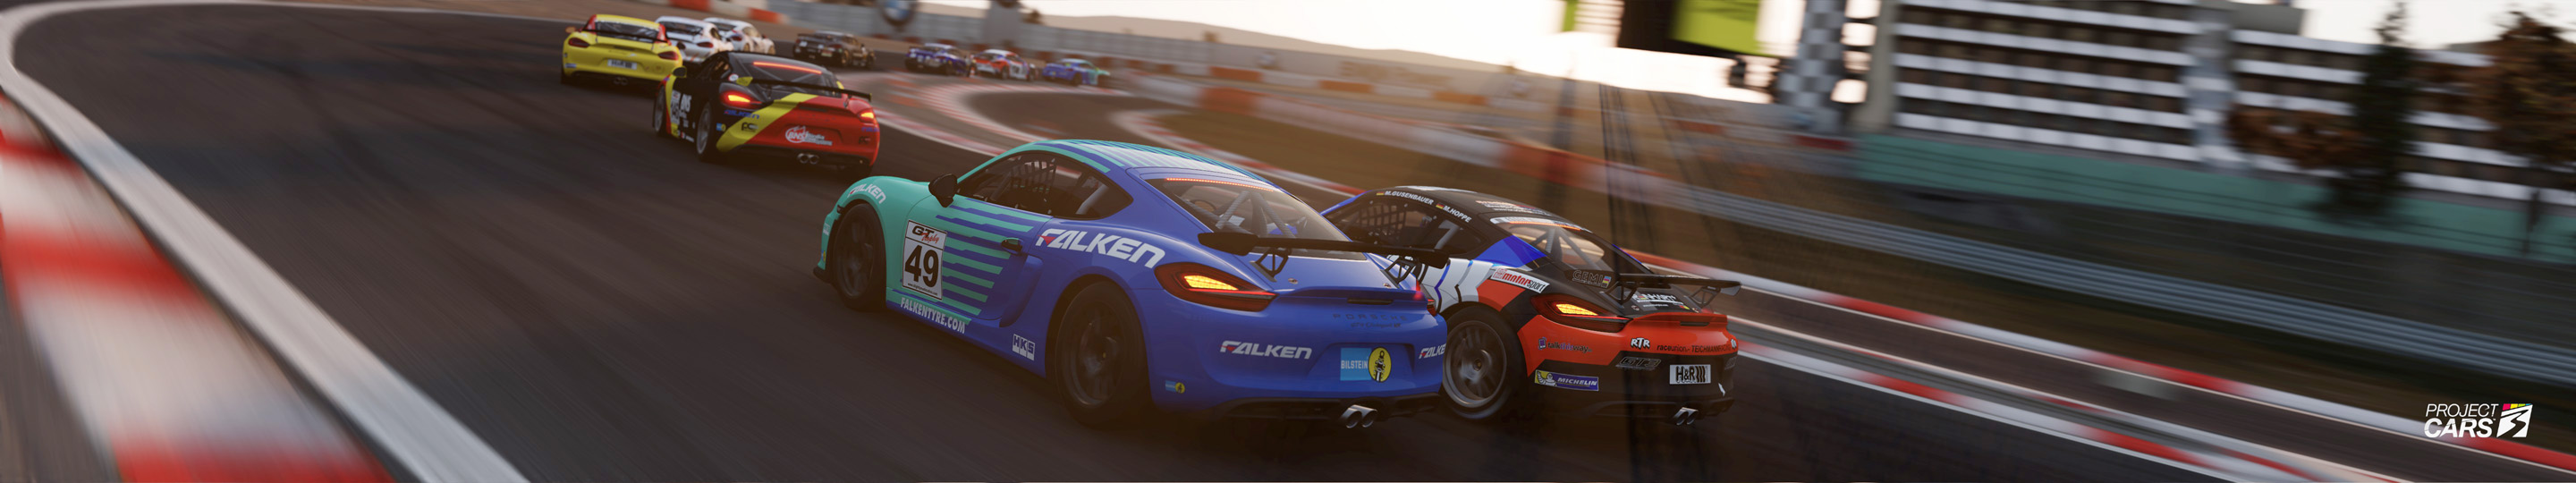 2 PROJECT CARS 3 PORSCHE Cayman GT4 at NURBURGRING copy.jpg